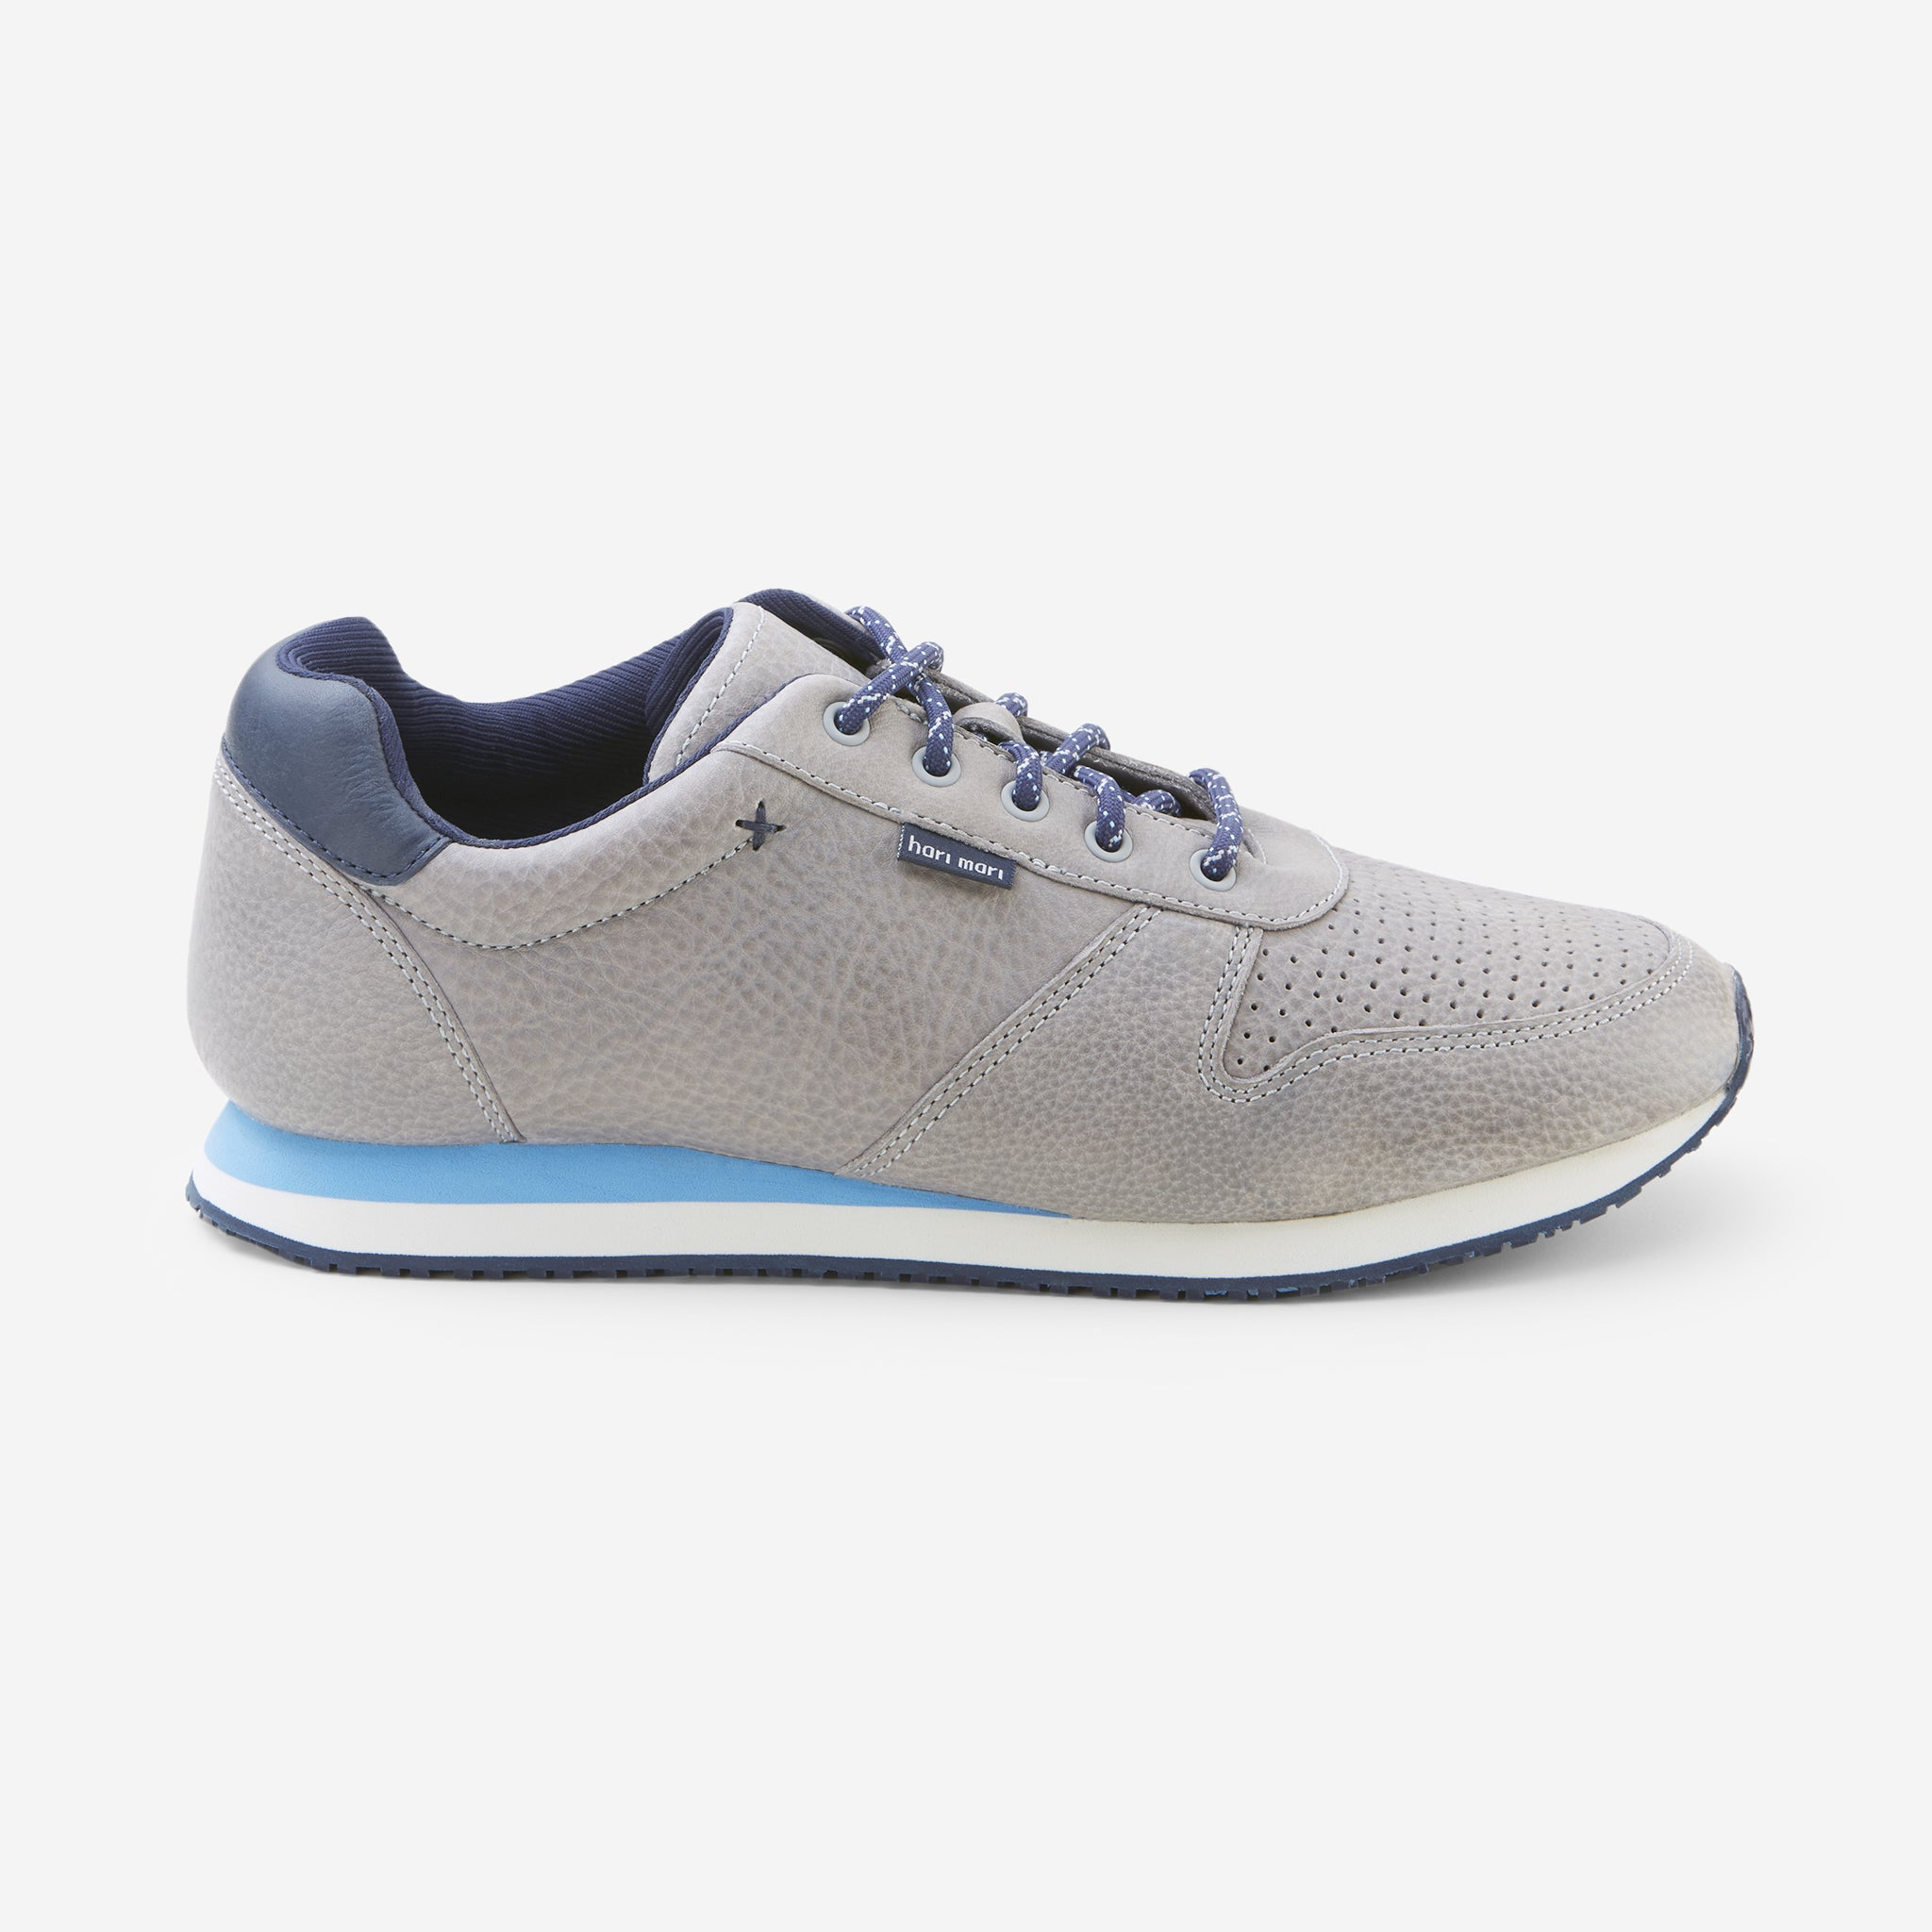 Dos Santos LX Retro Runner-Mens-Granite-Side View